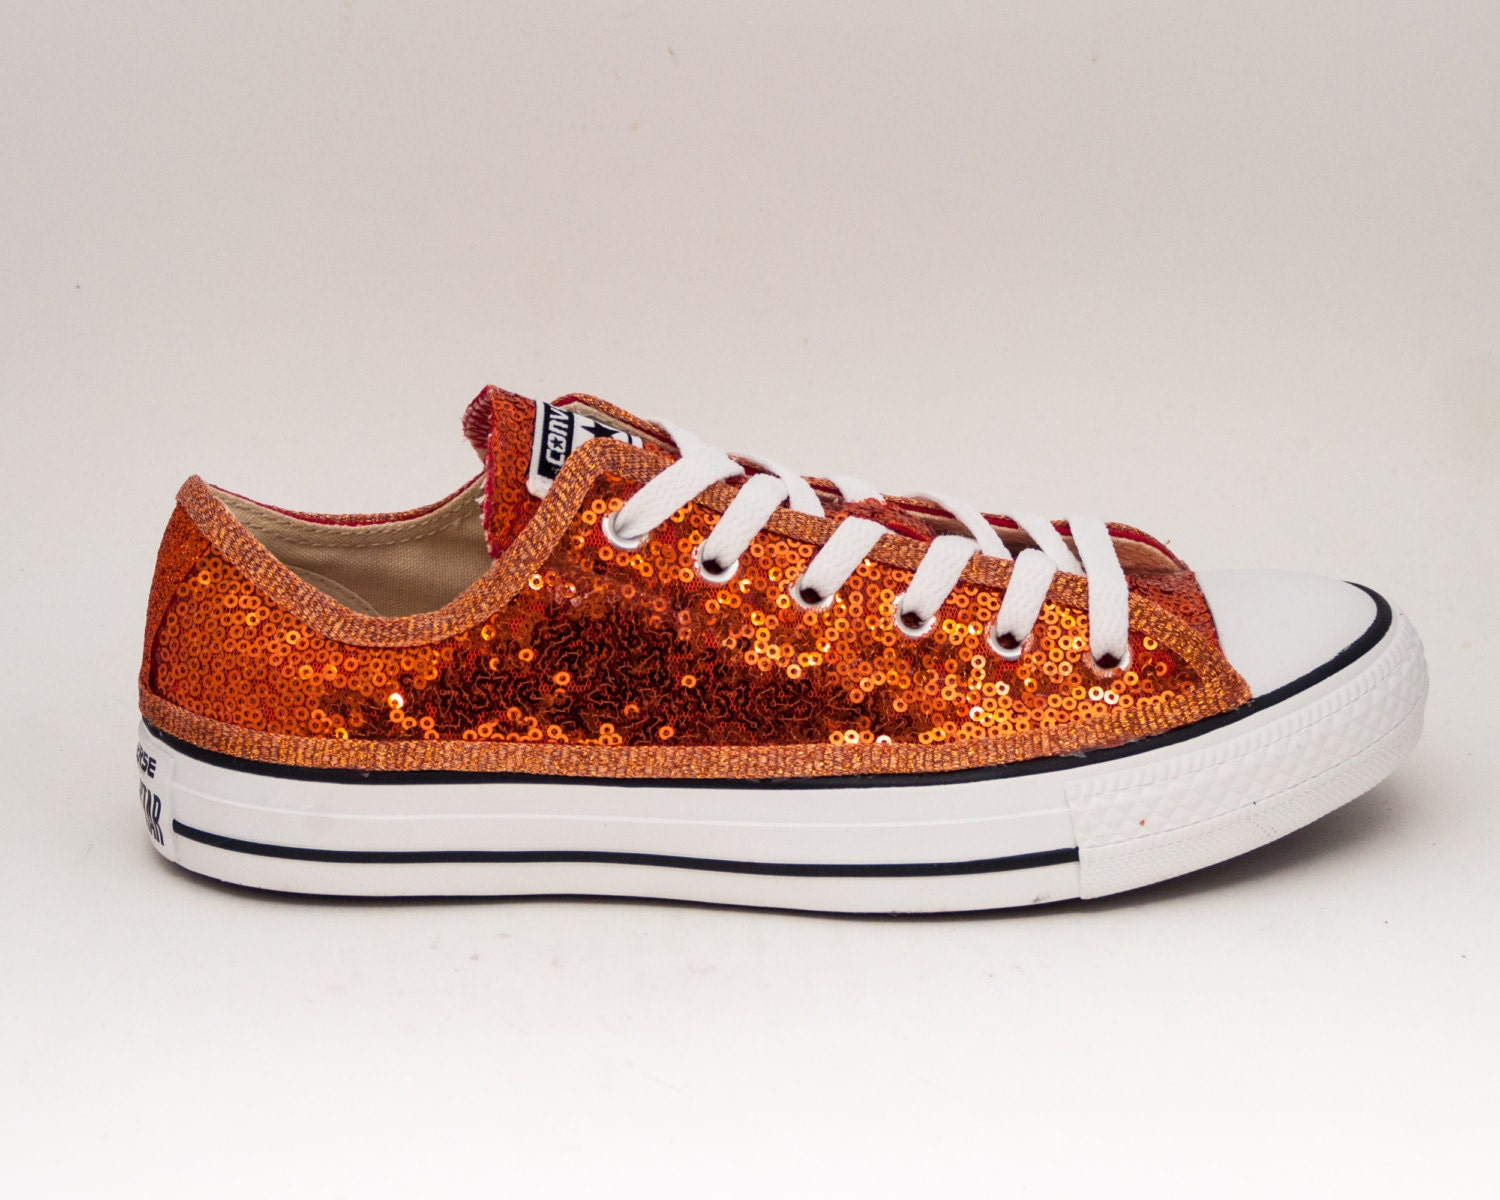 Womens Sparkly Glitter Bling Shoes Sneakers high low Heels Ballet Flats Converse Toms Mens Kids Bride Bridesmaid Bridal Gift Prom Birthday 16 pumps peep toe. Women's Sparkly Tangerine Orange Glitter Pumps high low Heels Wedding bride Shoes. Glitter Shoe Co is a Custom Design Studio in Miami, Florida. We specialize in custom footwear.